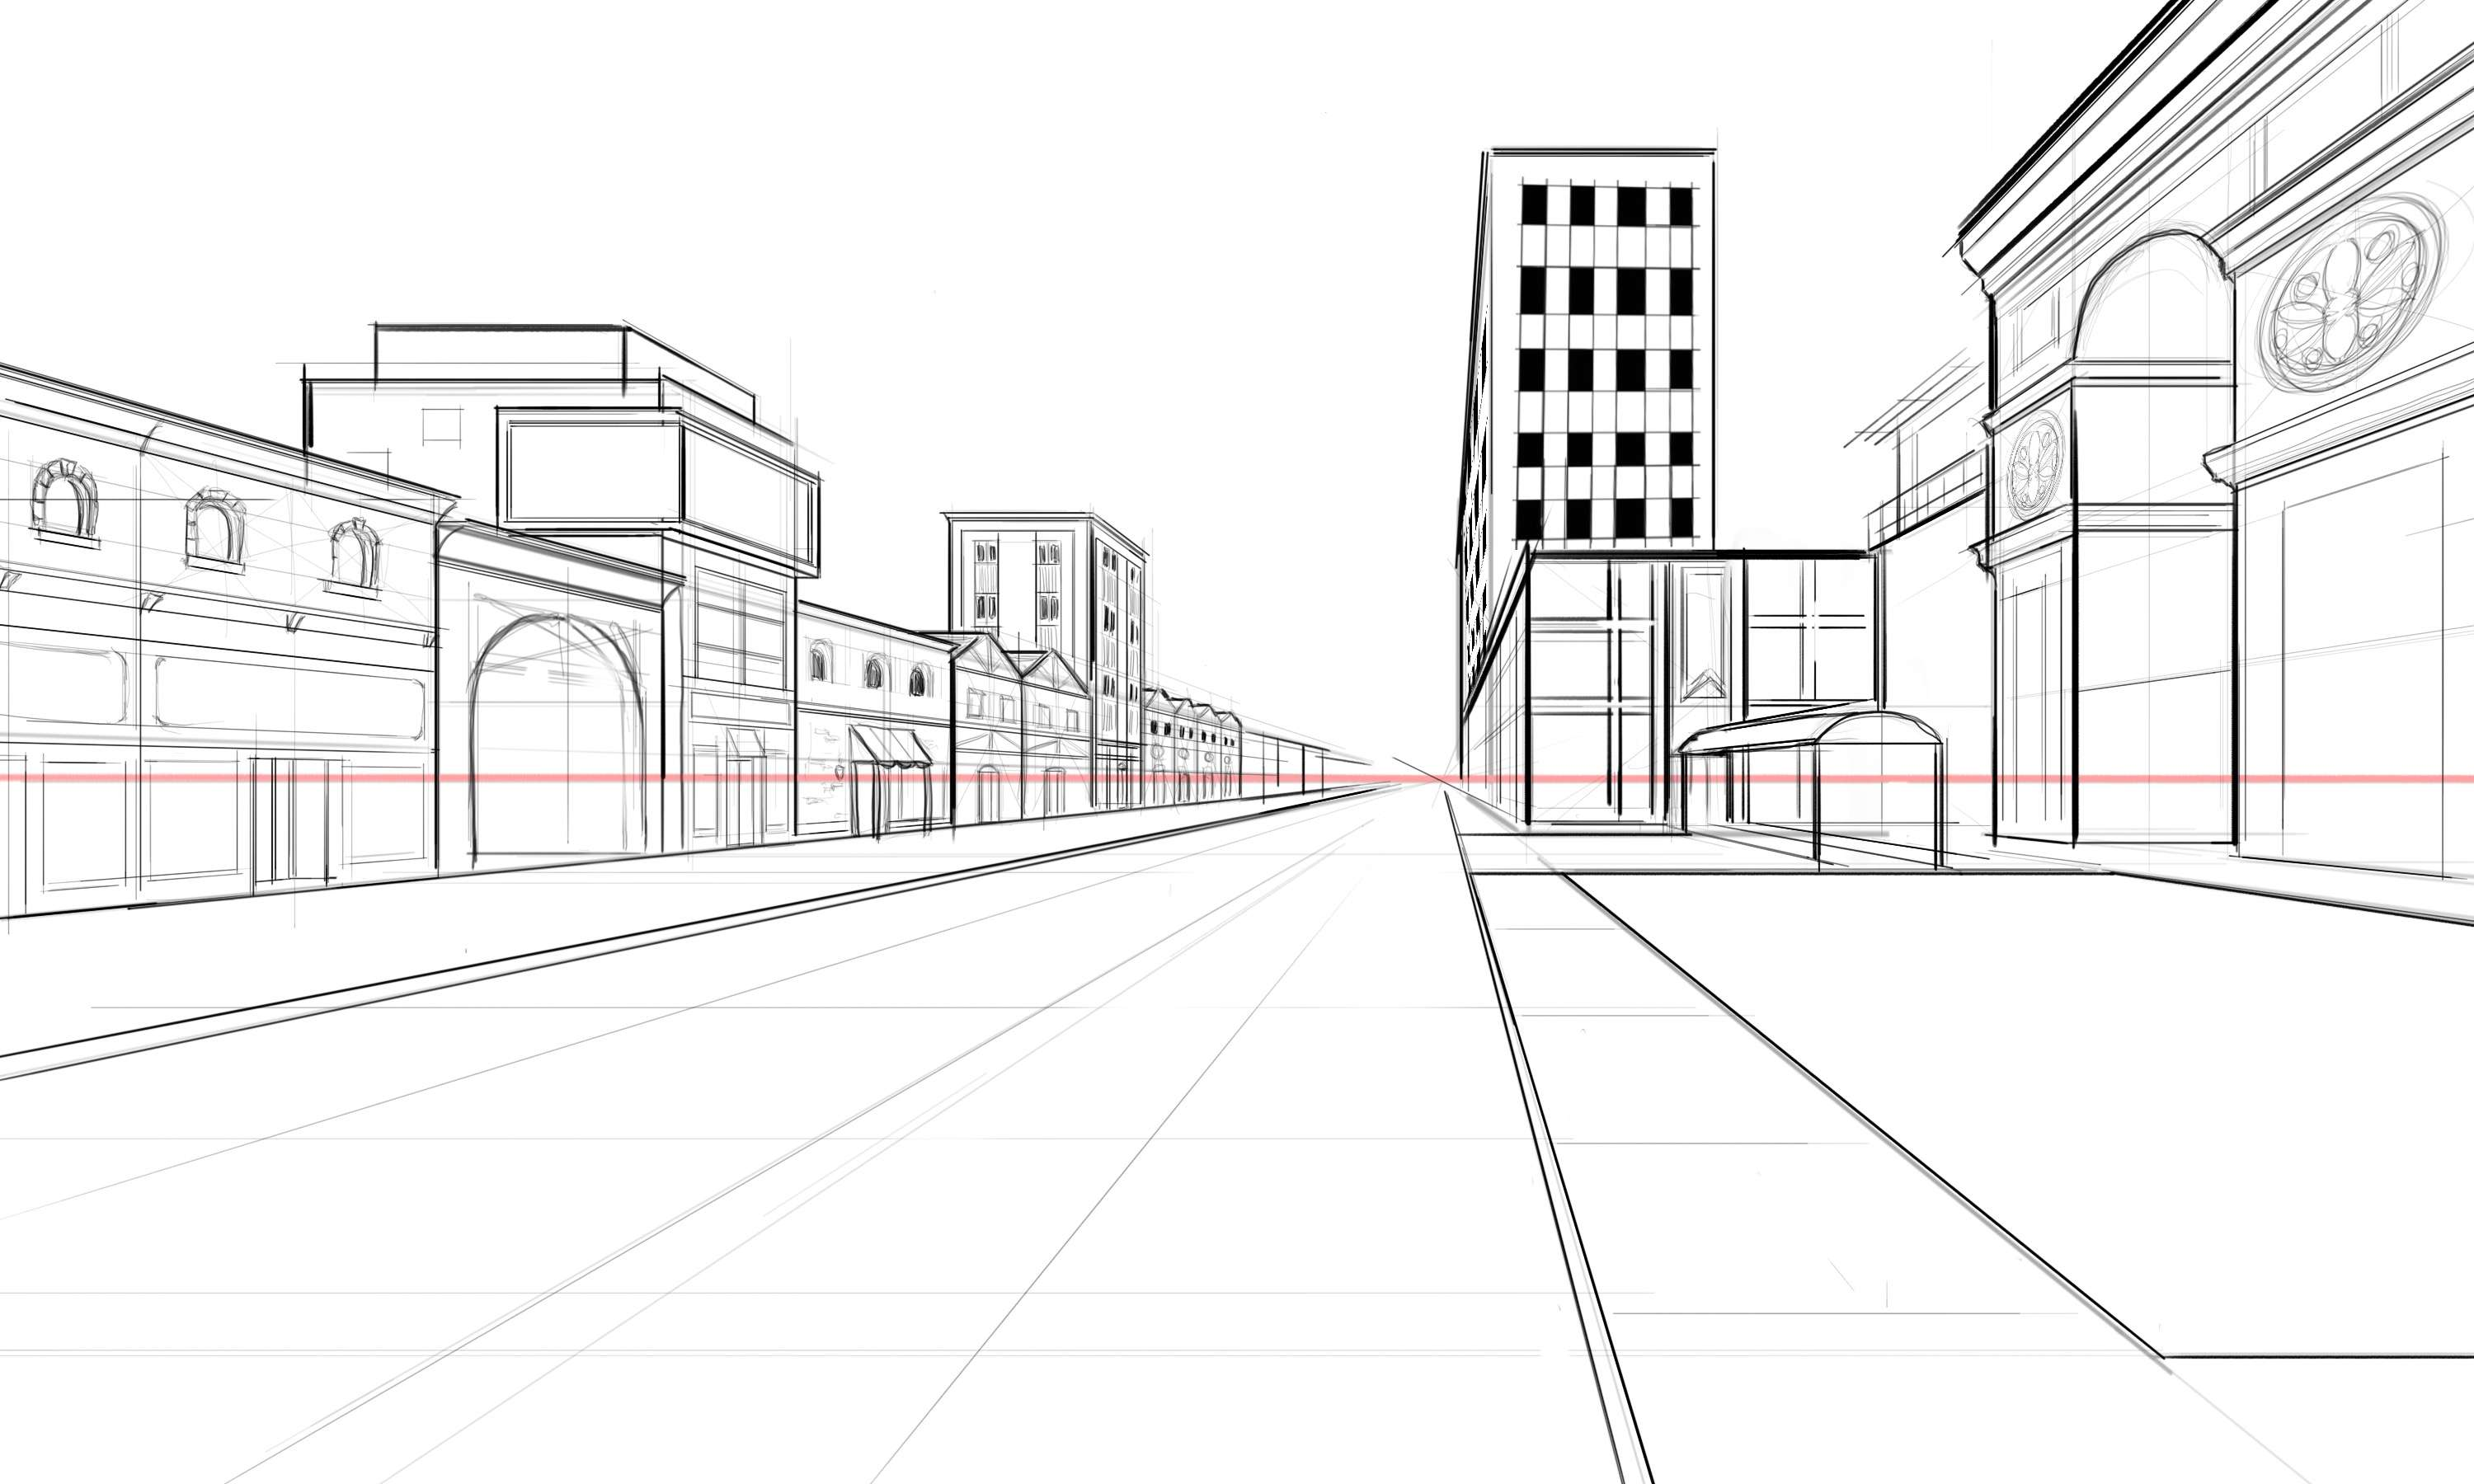 Draw Architectural Street Scenes